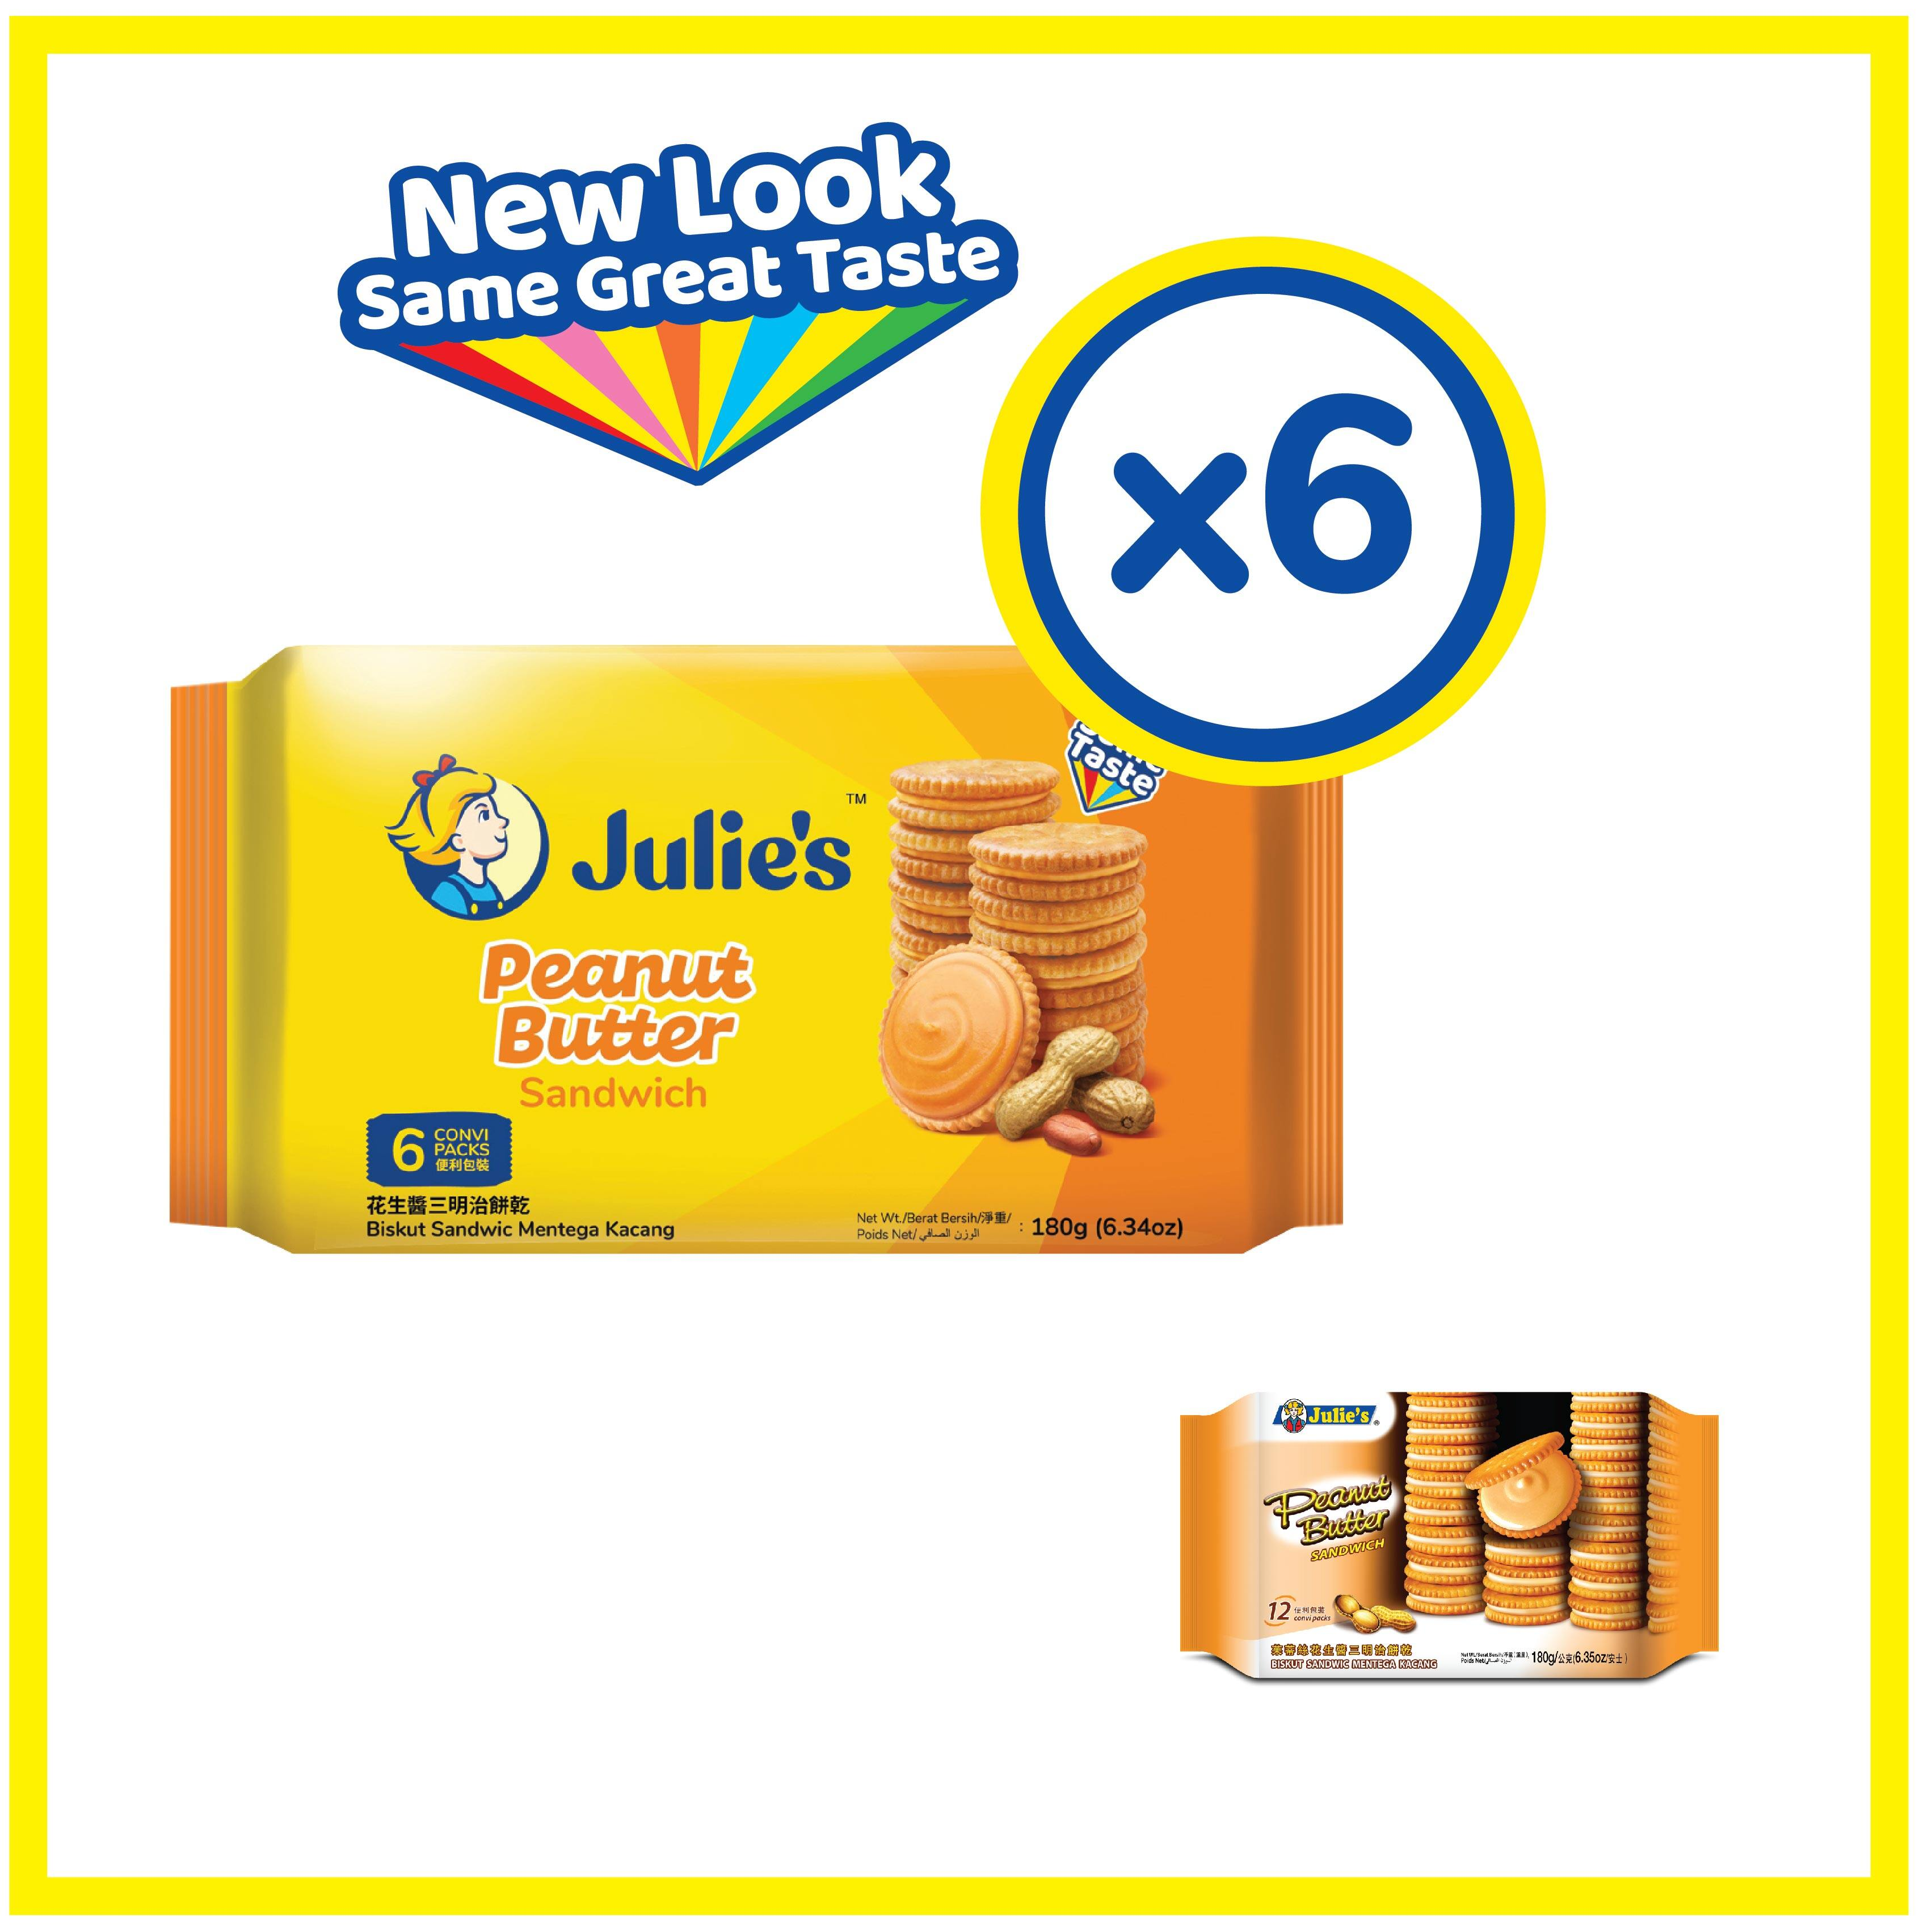 Julie's Peanut Butter Sandwich 180g x 6 pack